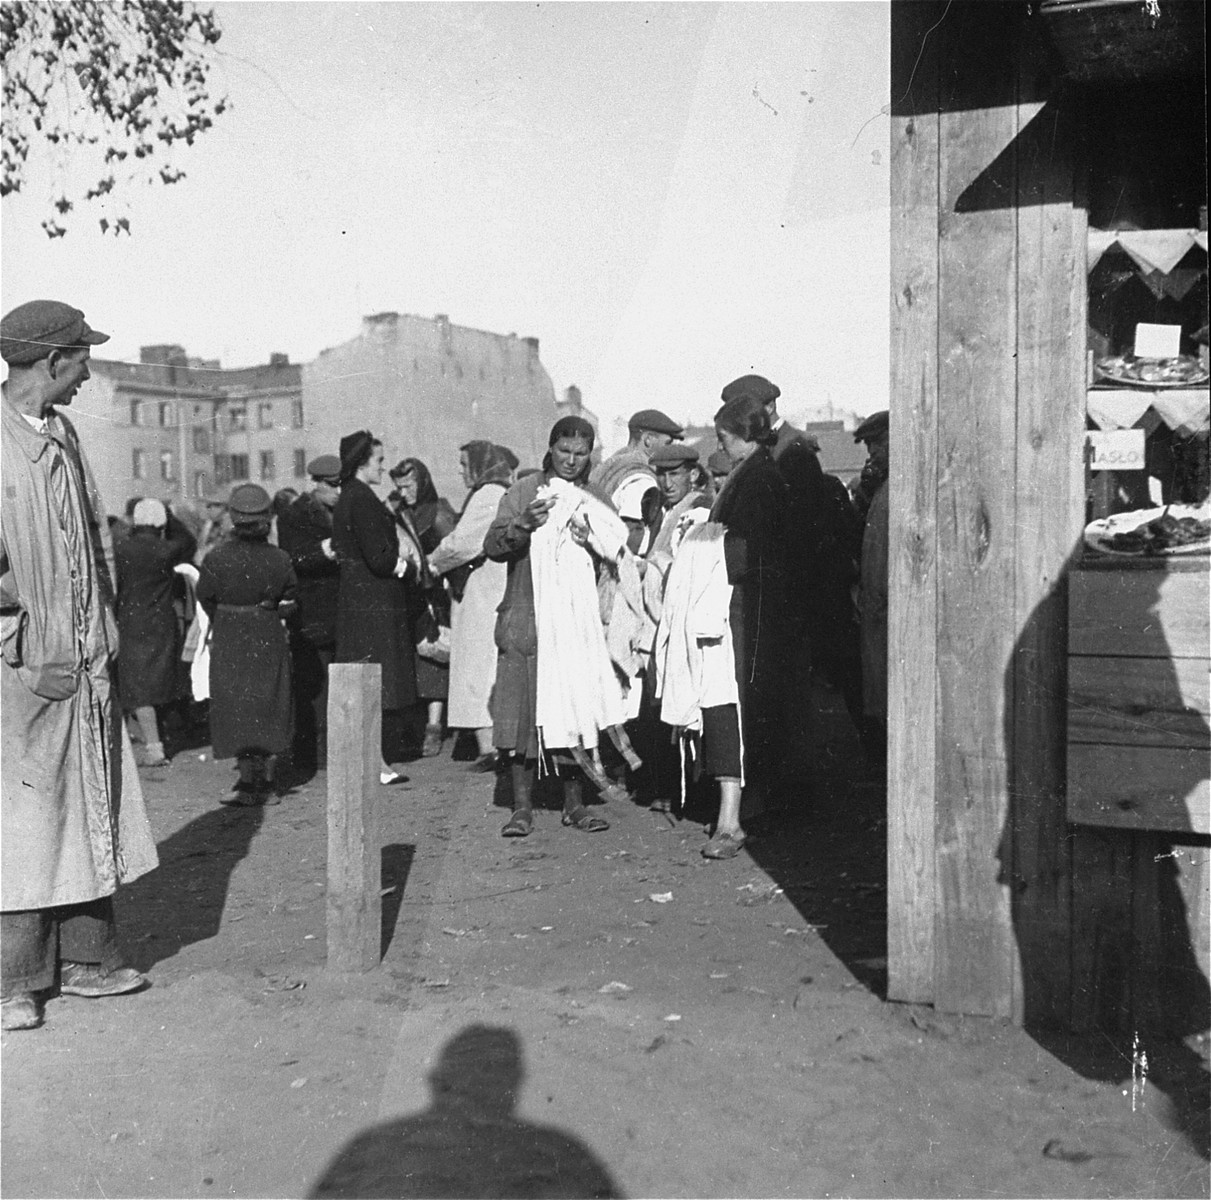 """Inhabitants of the Warsaw ghetto sell clothing to Polish customers at an open air market.    Joest's original caption reads: """"Those with the white armbands, the Jews, were the ones selling.  Those without armbands, the Poles, were the buyers."""""""